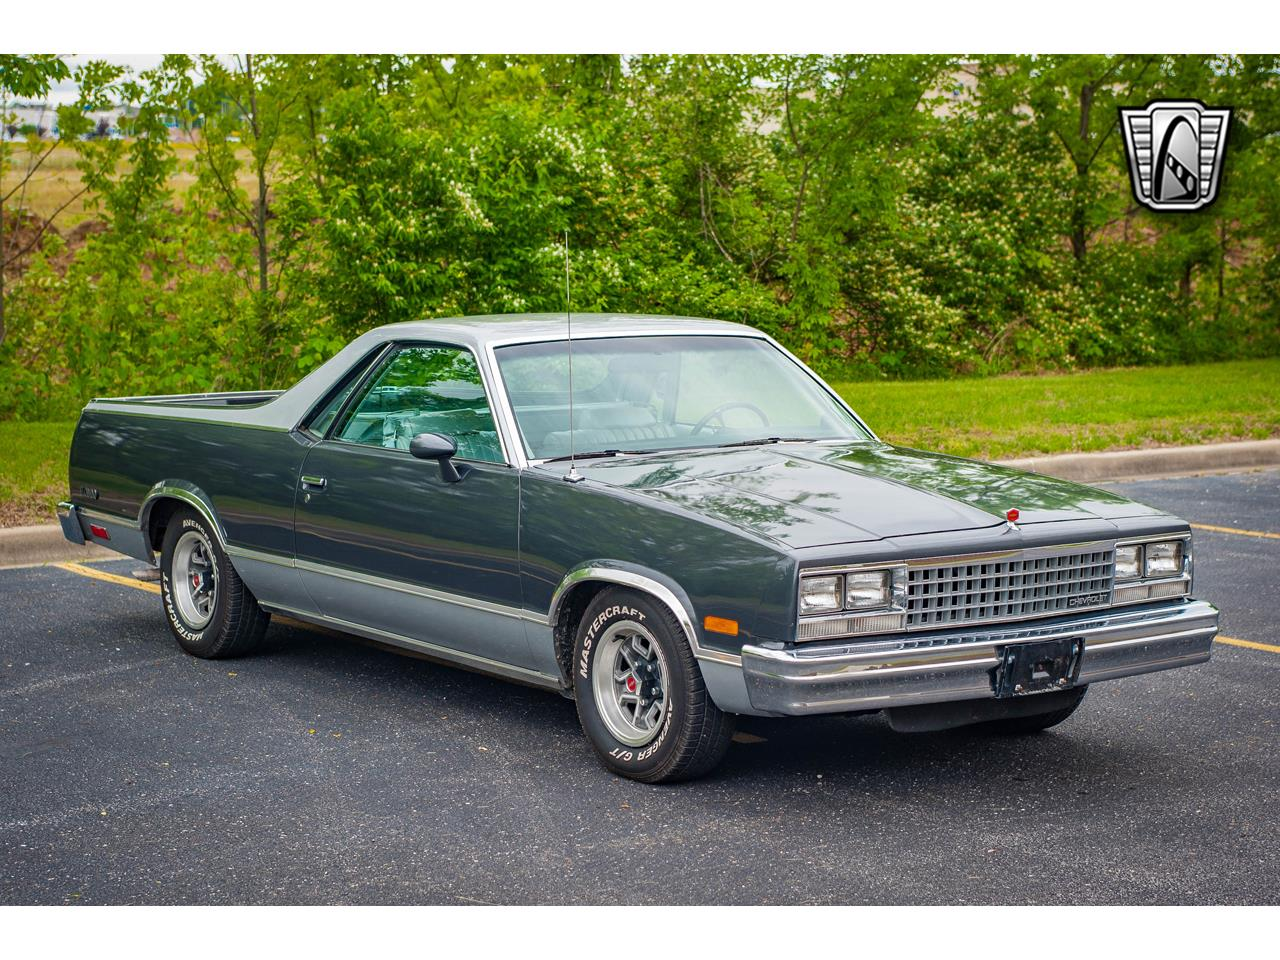 Large Picture of '82 El Camino located in Illinois - QB9A